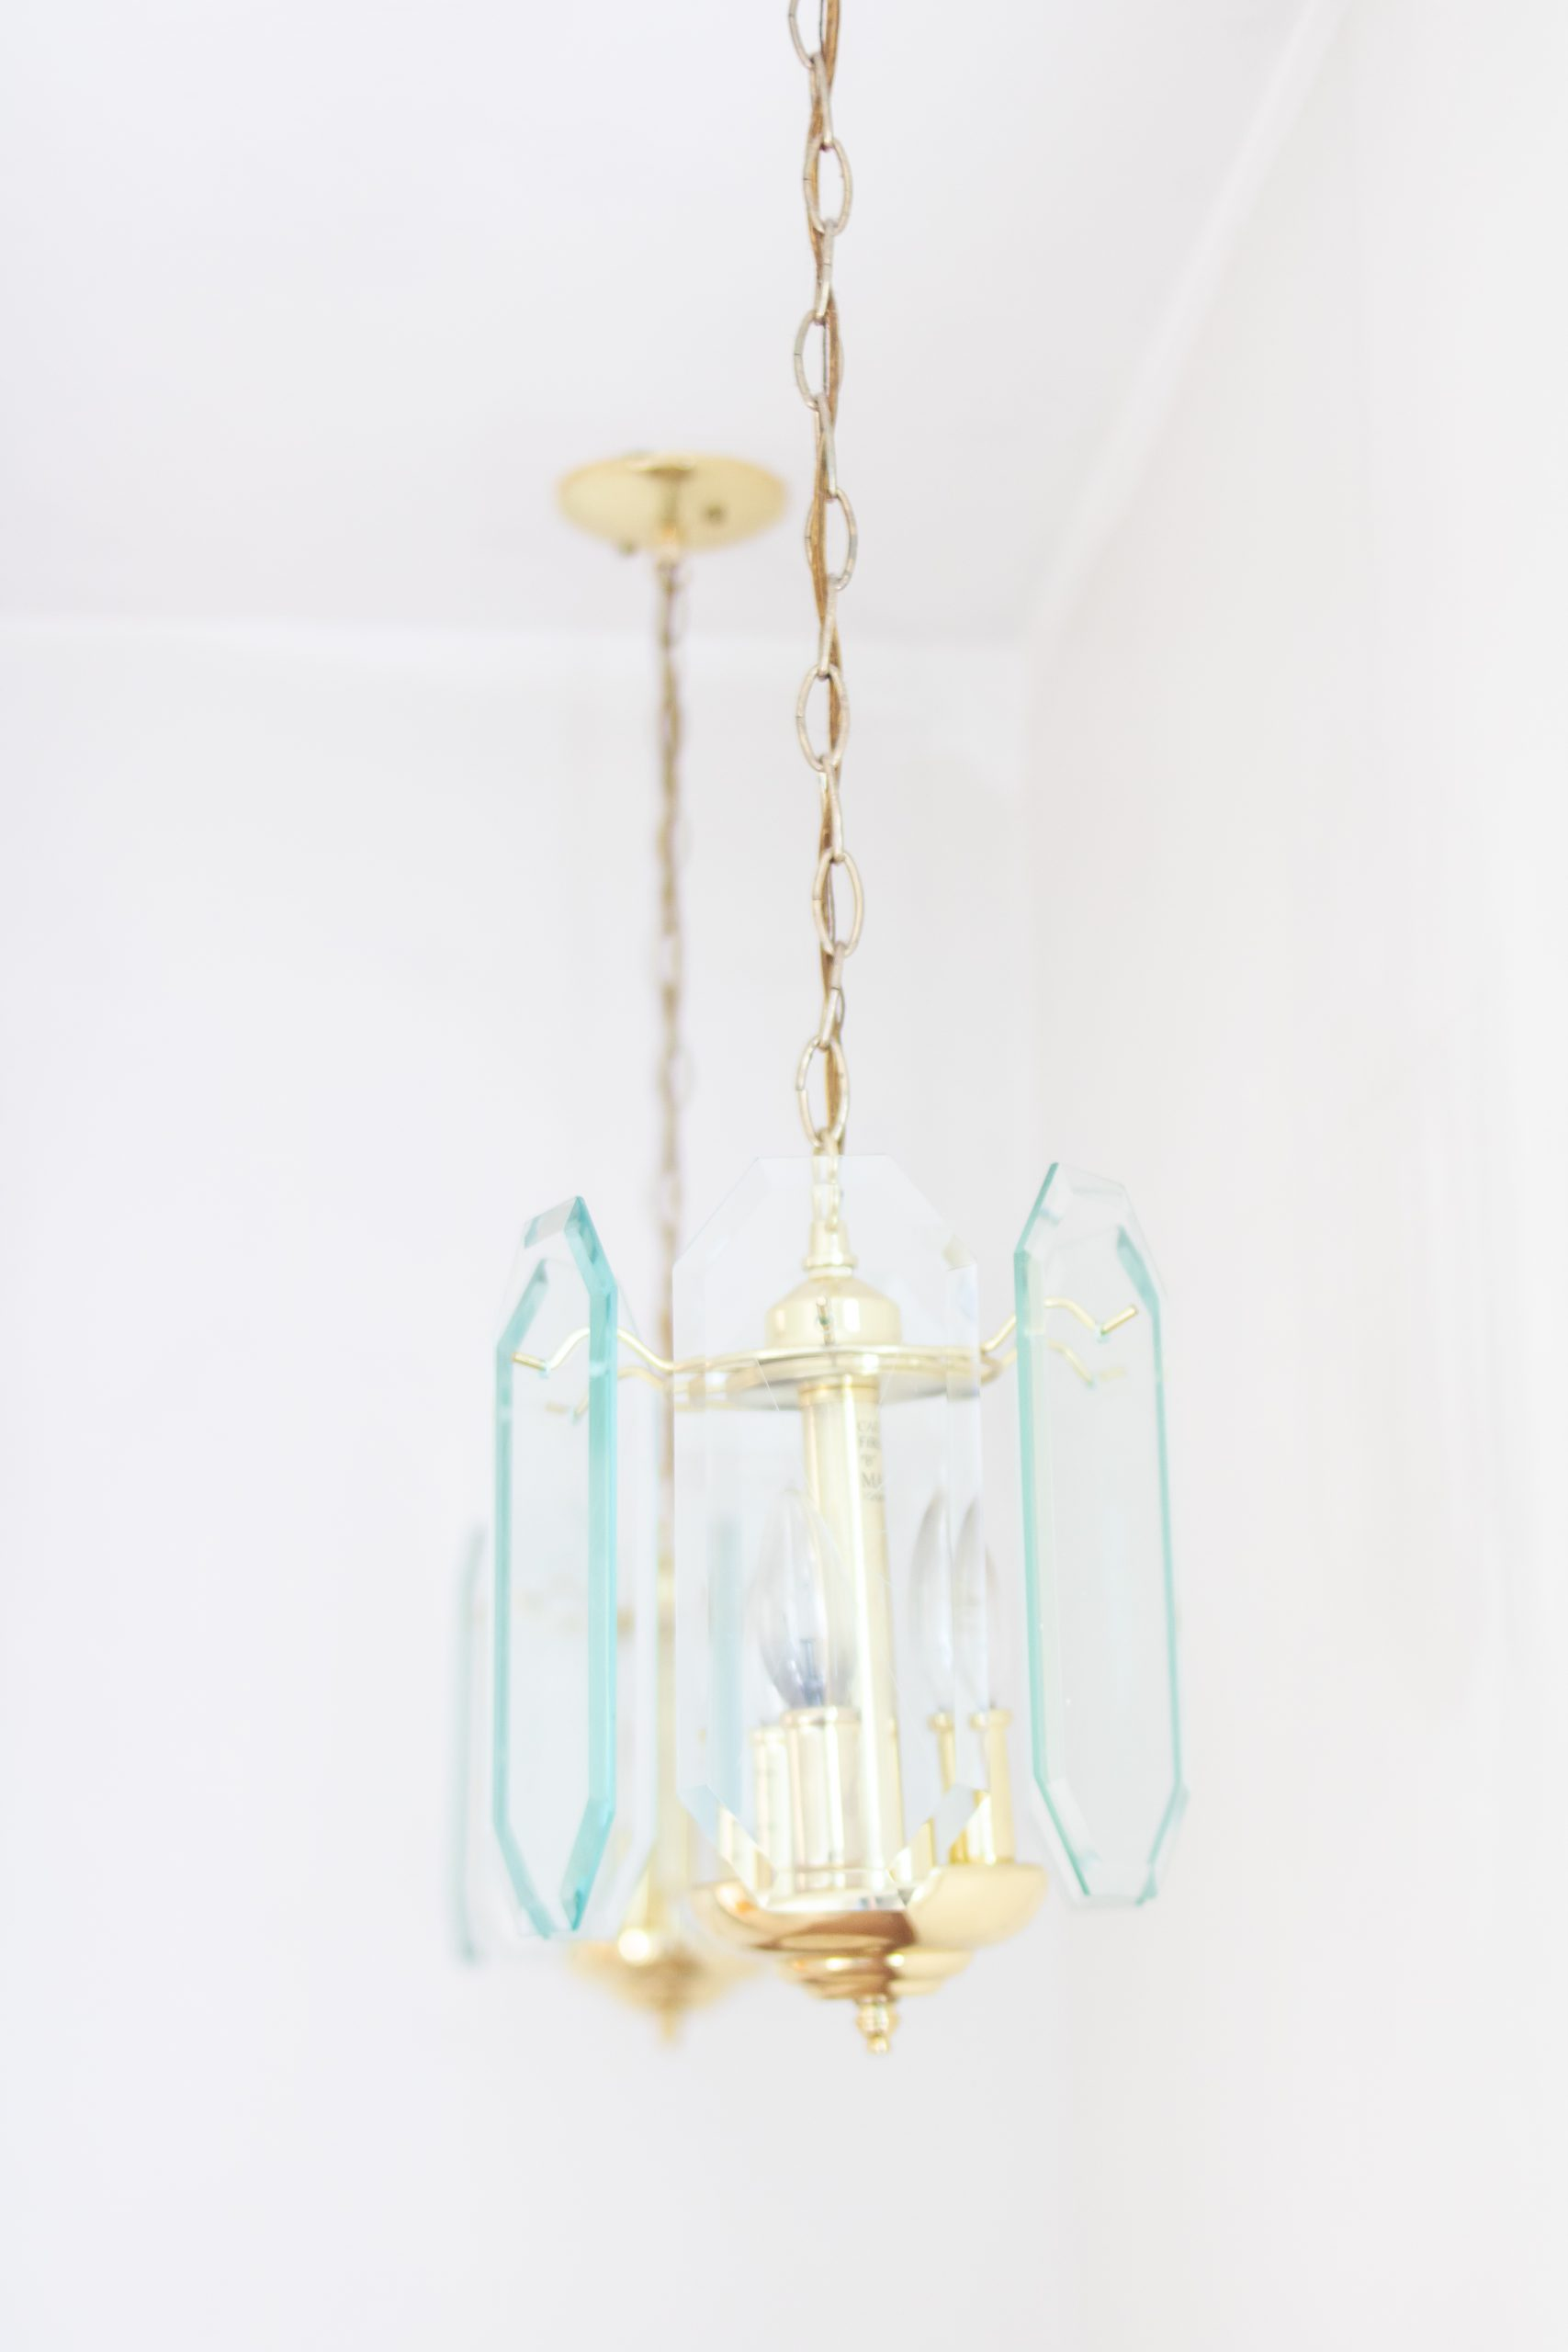 glass pendant light fixture 1970s